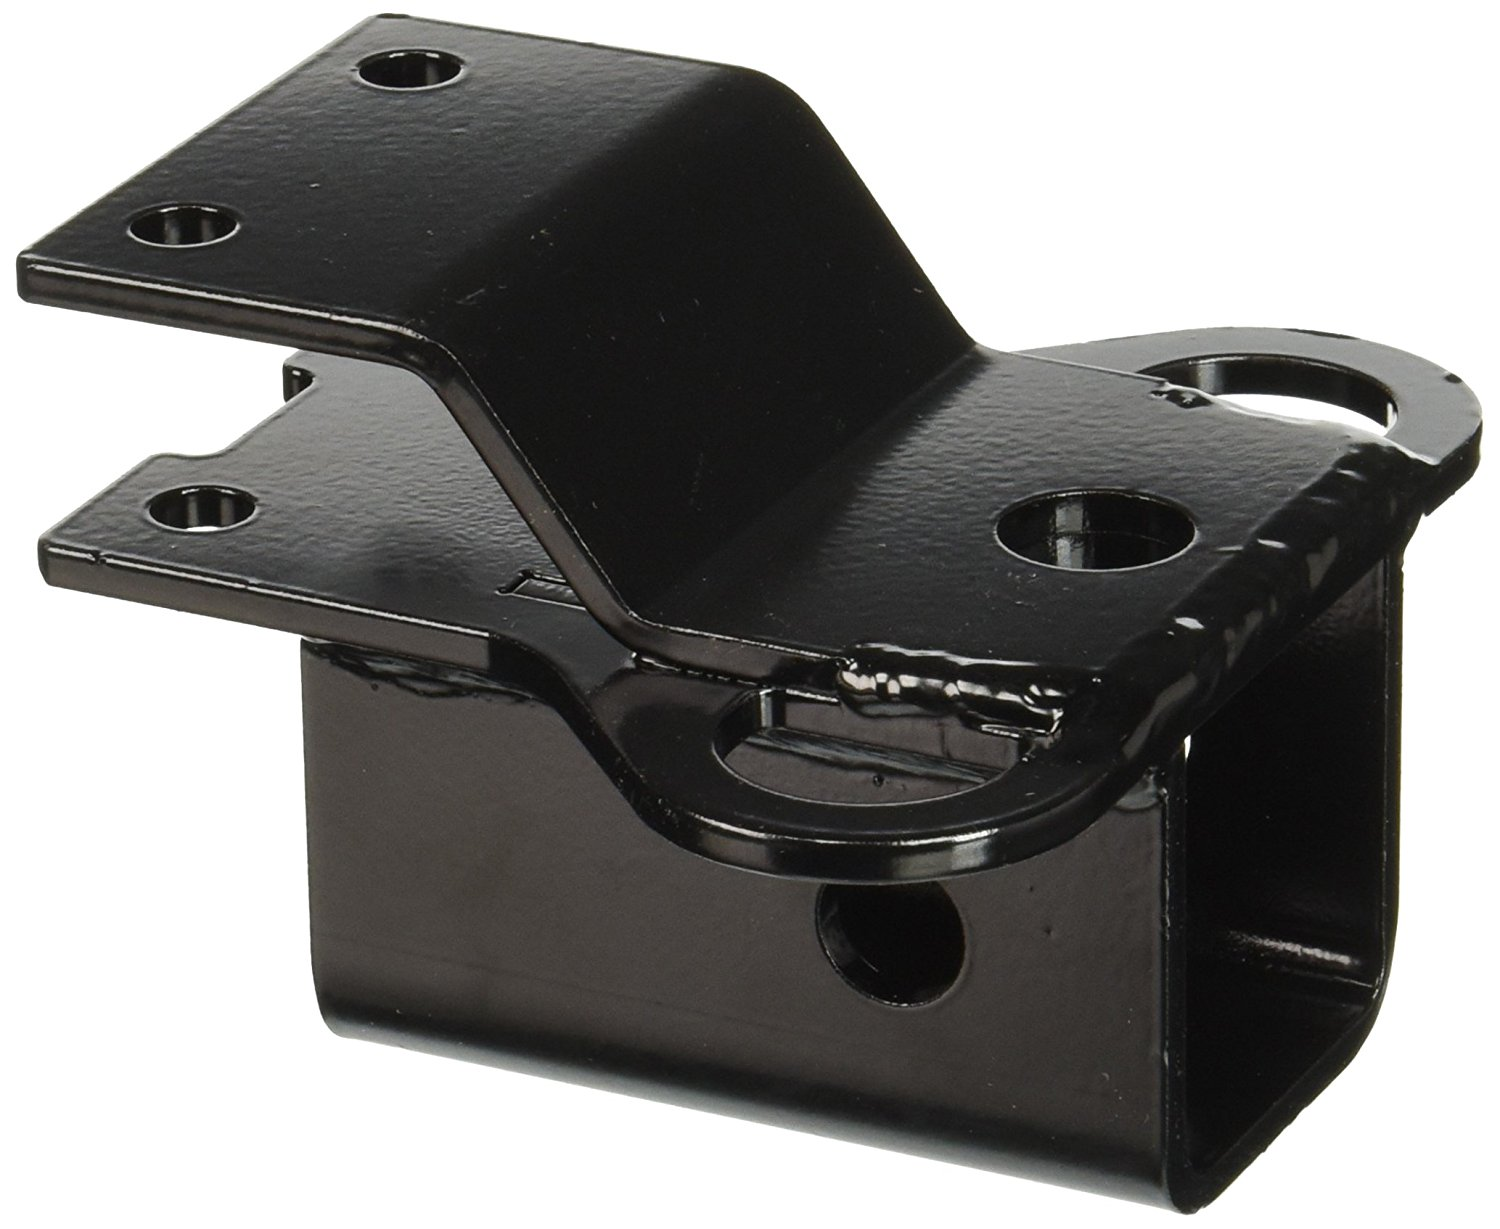 Receiver Hitch KFI Products 100720